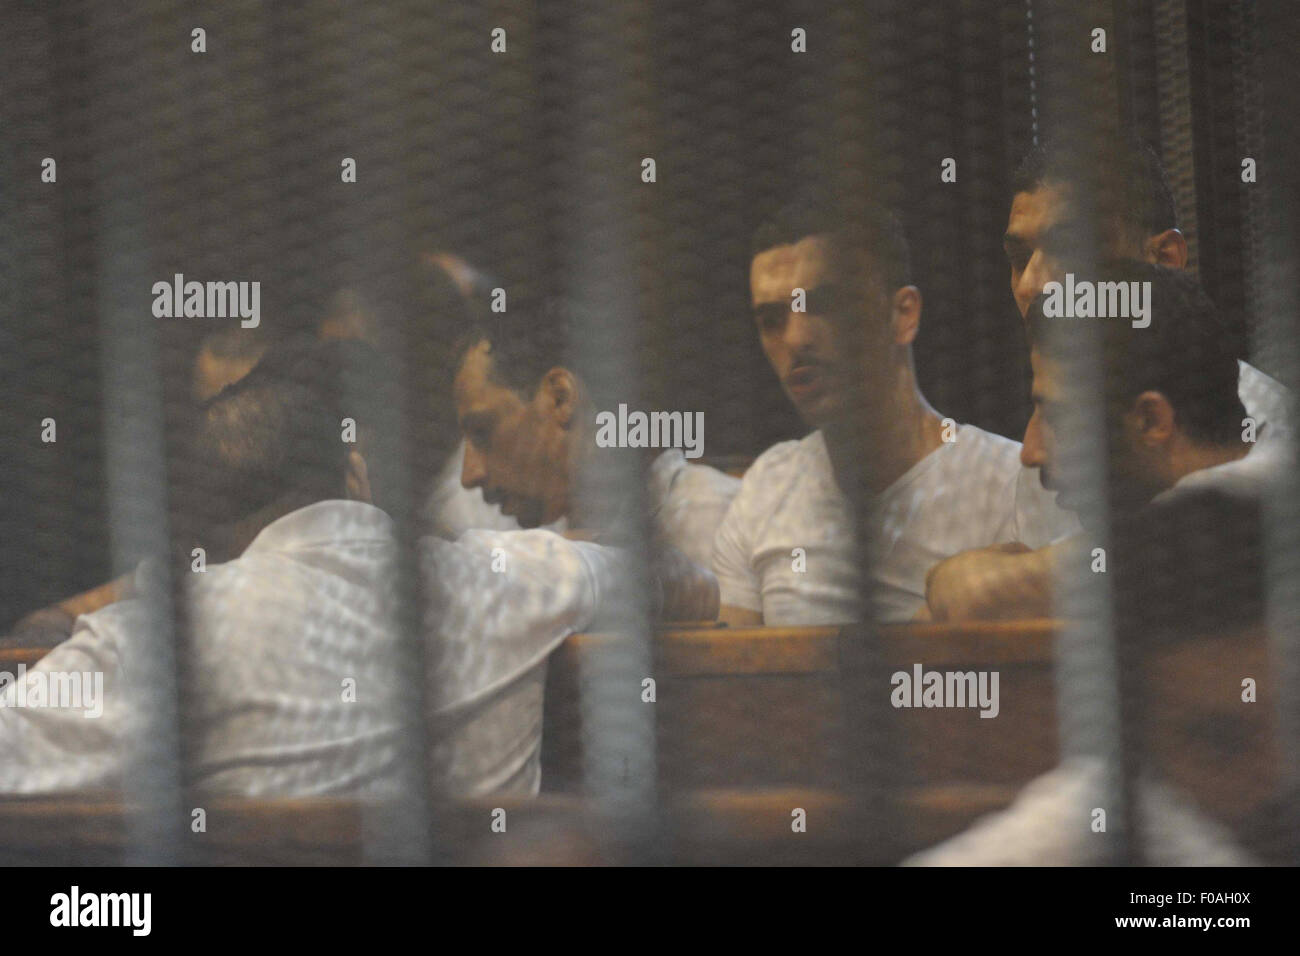 Cairo, Egypt. 11th Aug, 2015. Egyptian defendants sit behind bars during their trial over a 2012 stadium riot in Stock Photo